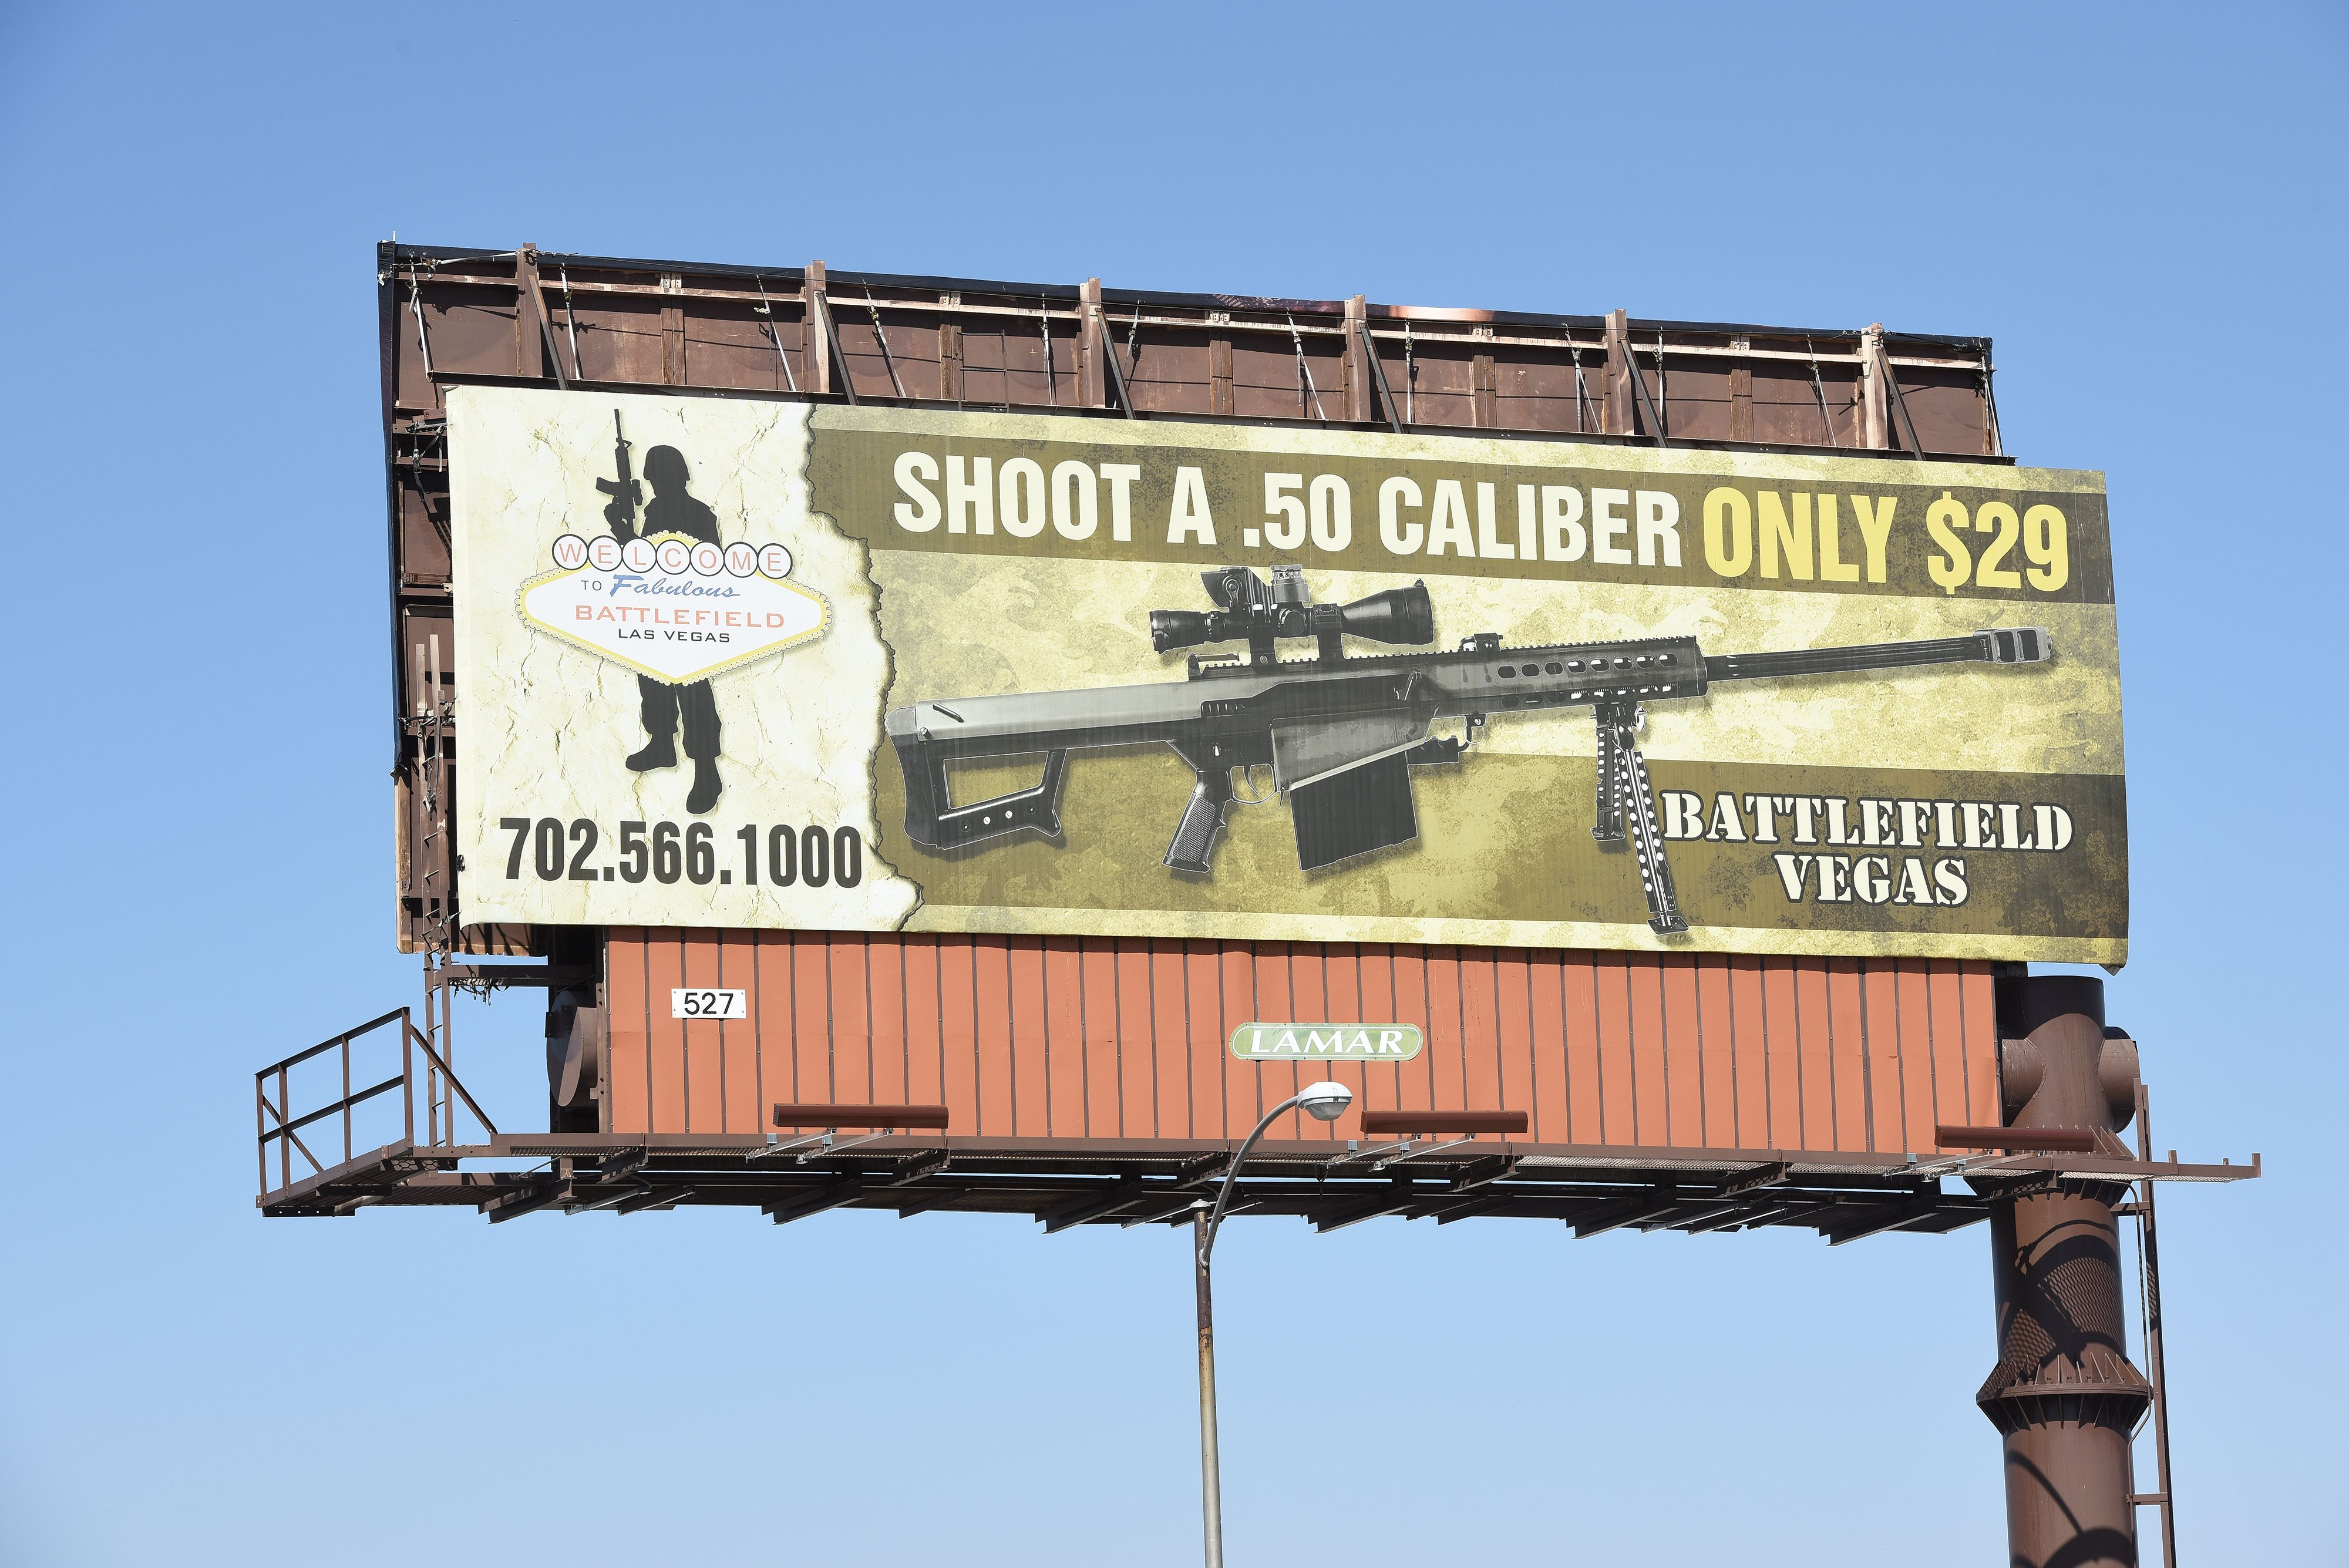 A billboard advertises a gun shooting range in Las Vegas, Nevada on October 4, 2017.